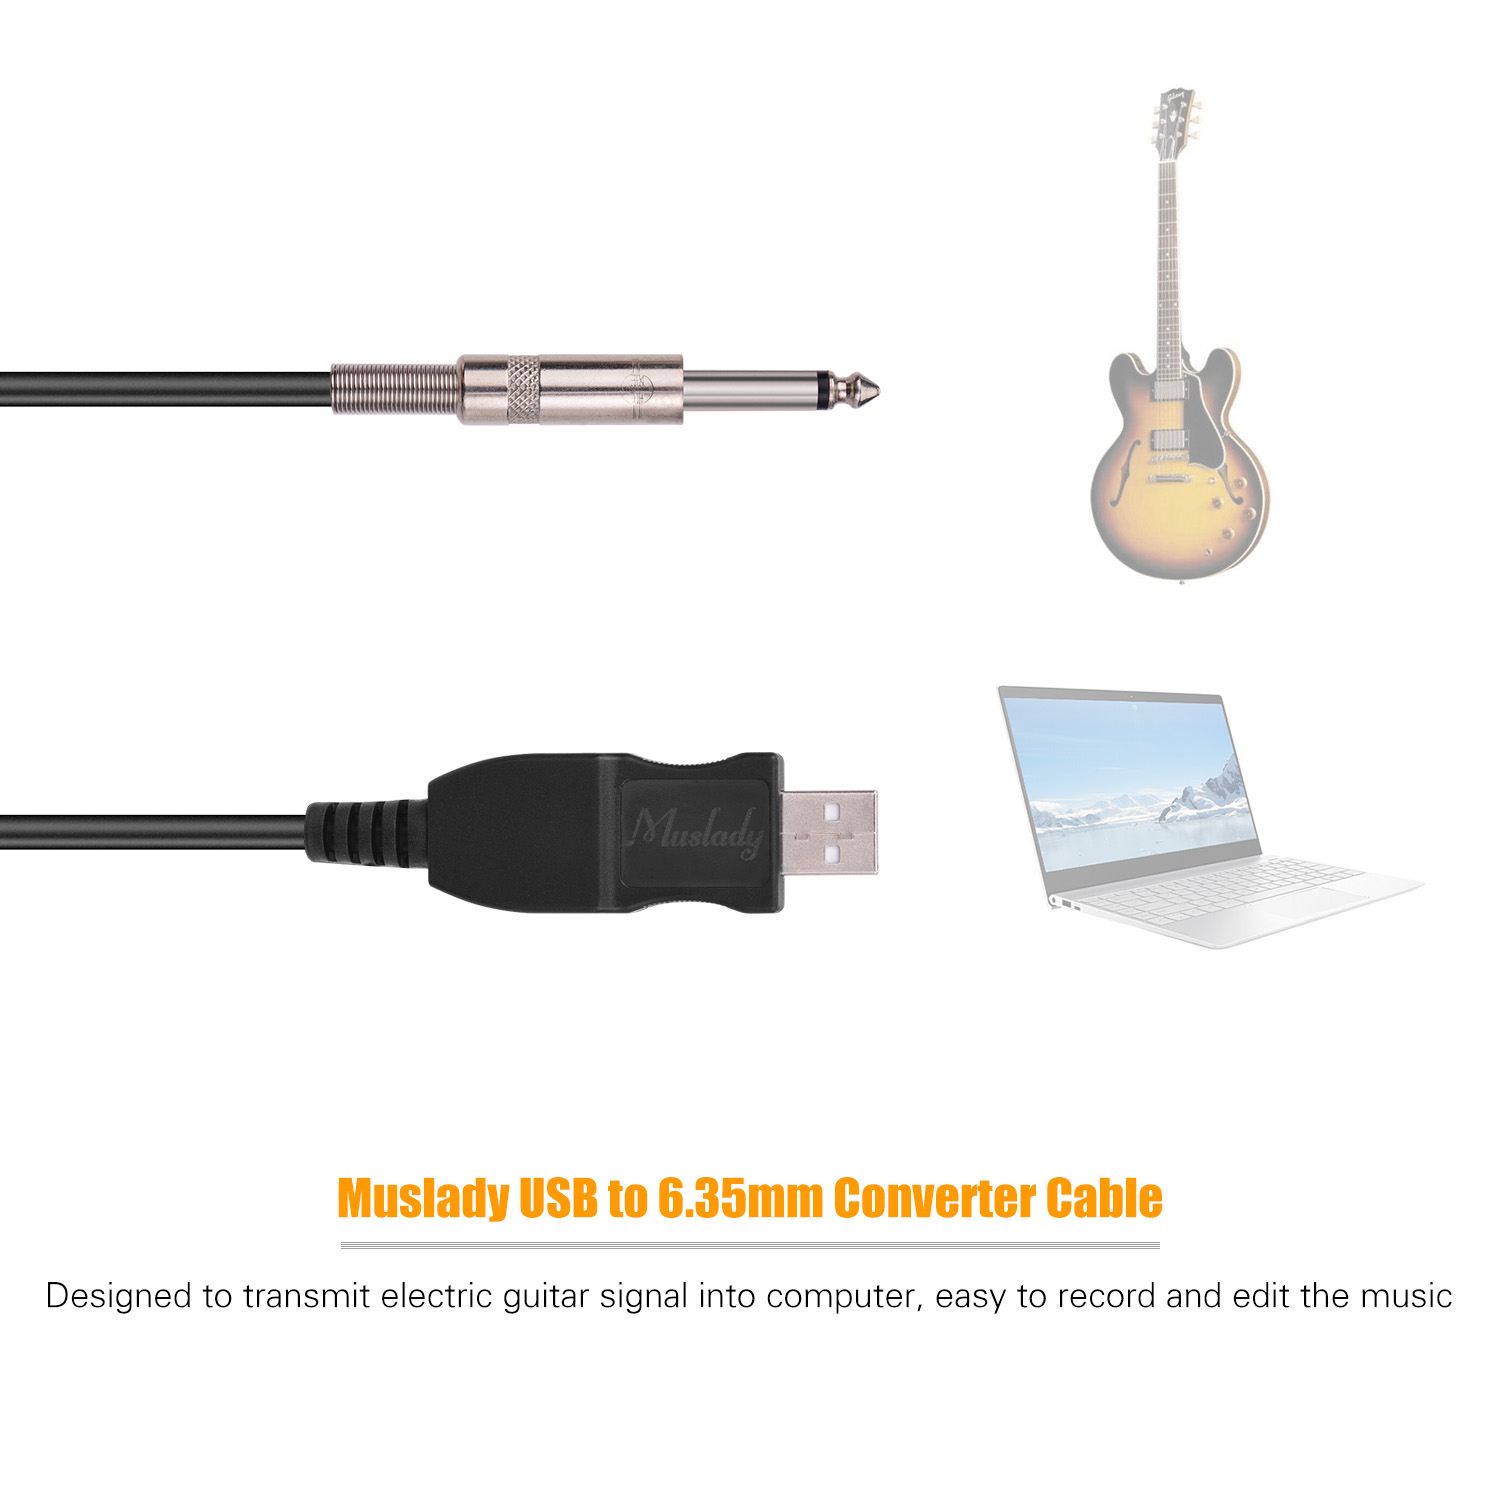 USB Guitar Cable USB Interface Male to 6.35mm Mono Male Electric Guitar Converter Cable Guitar Computer Connector Cord Adapter Cables for Studio Stage Instrument Recording Singing 3 Meter Black